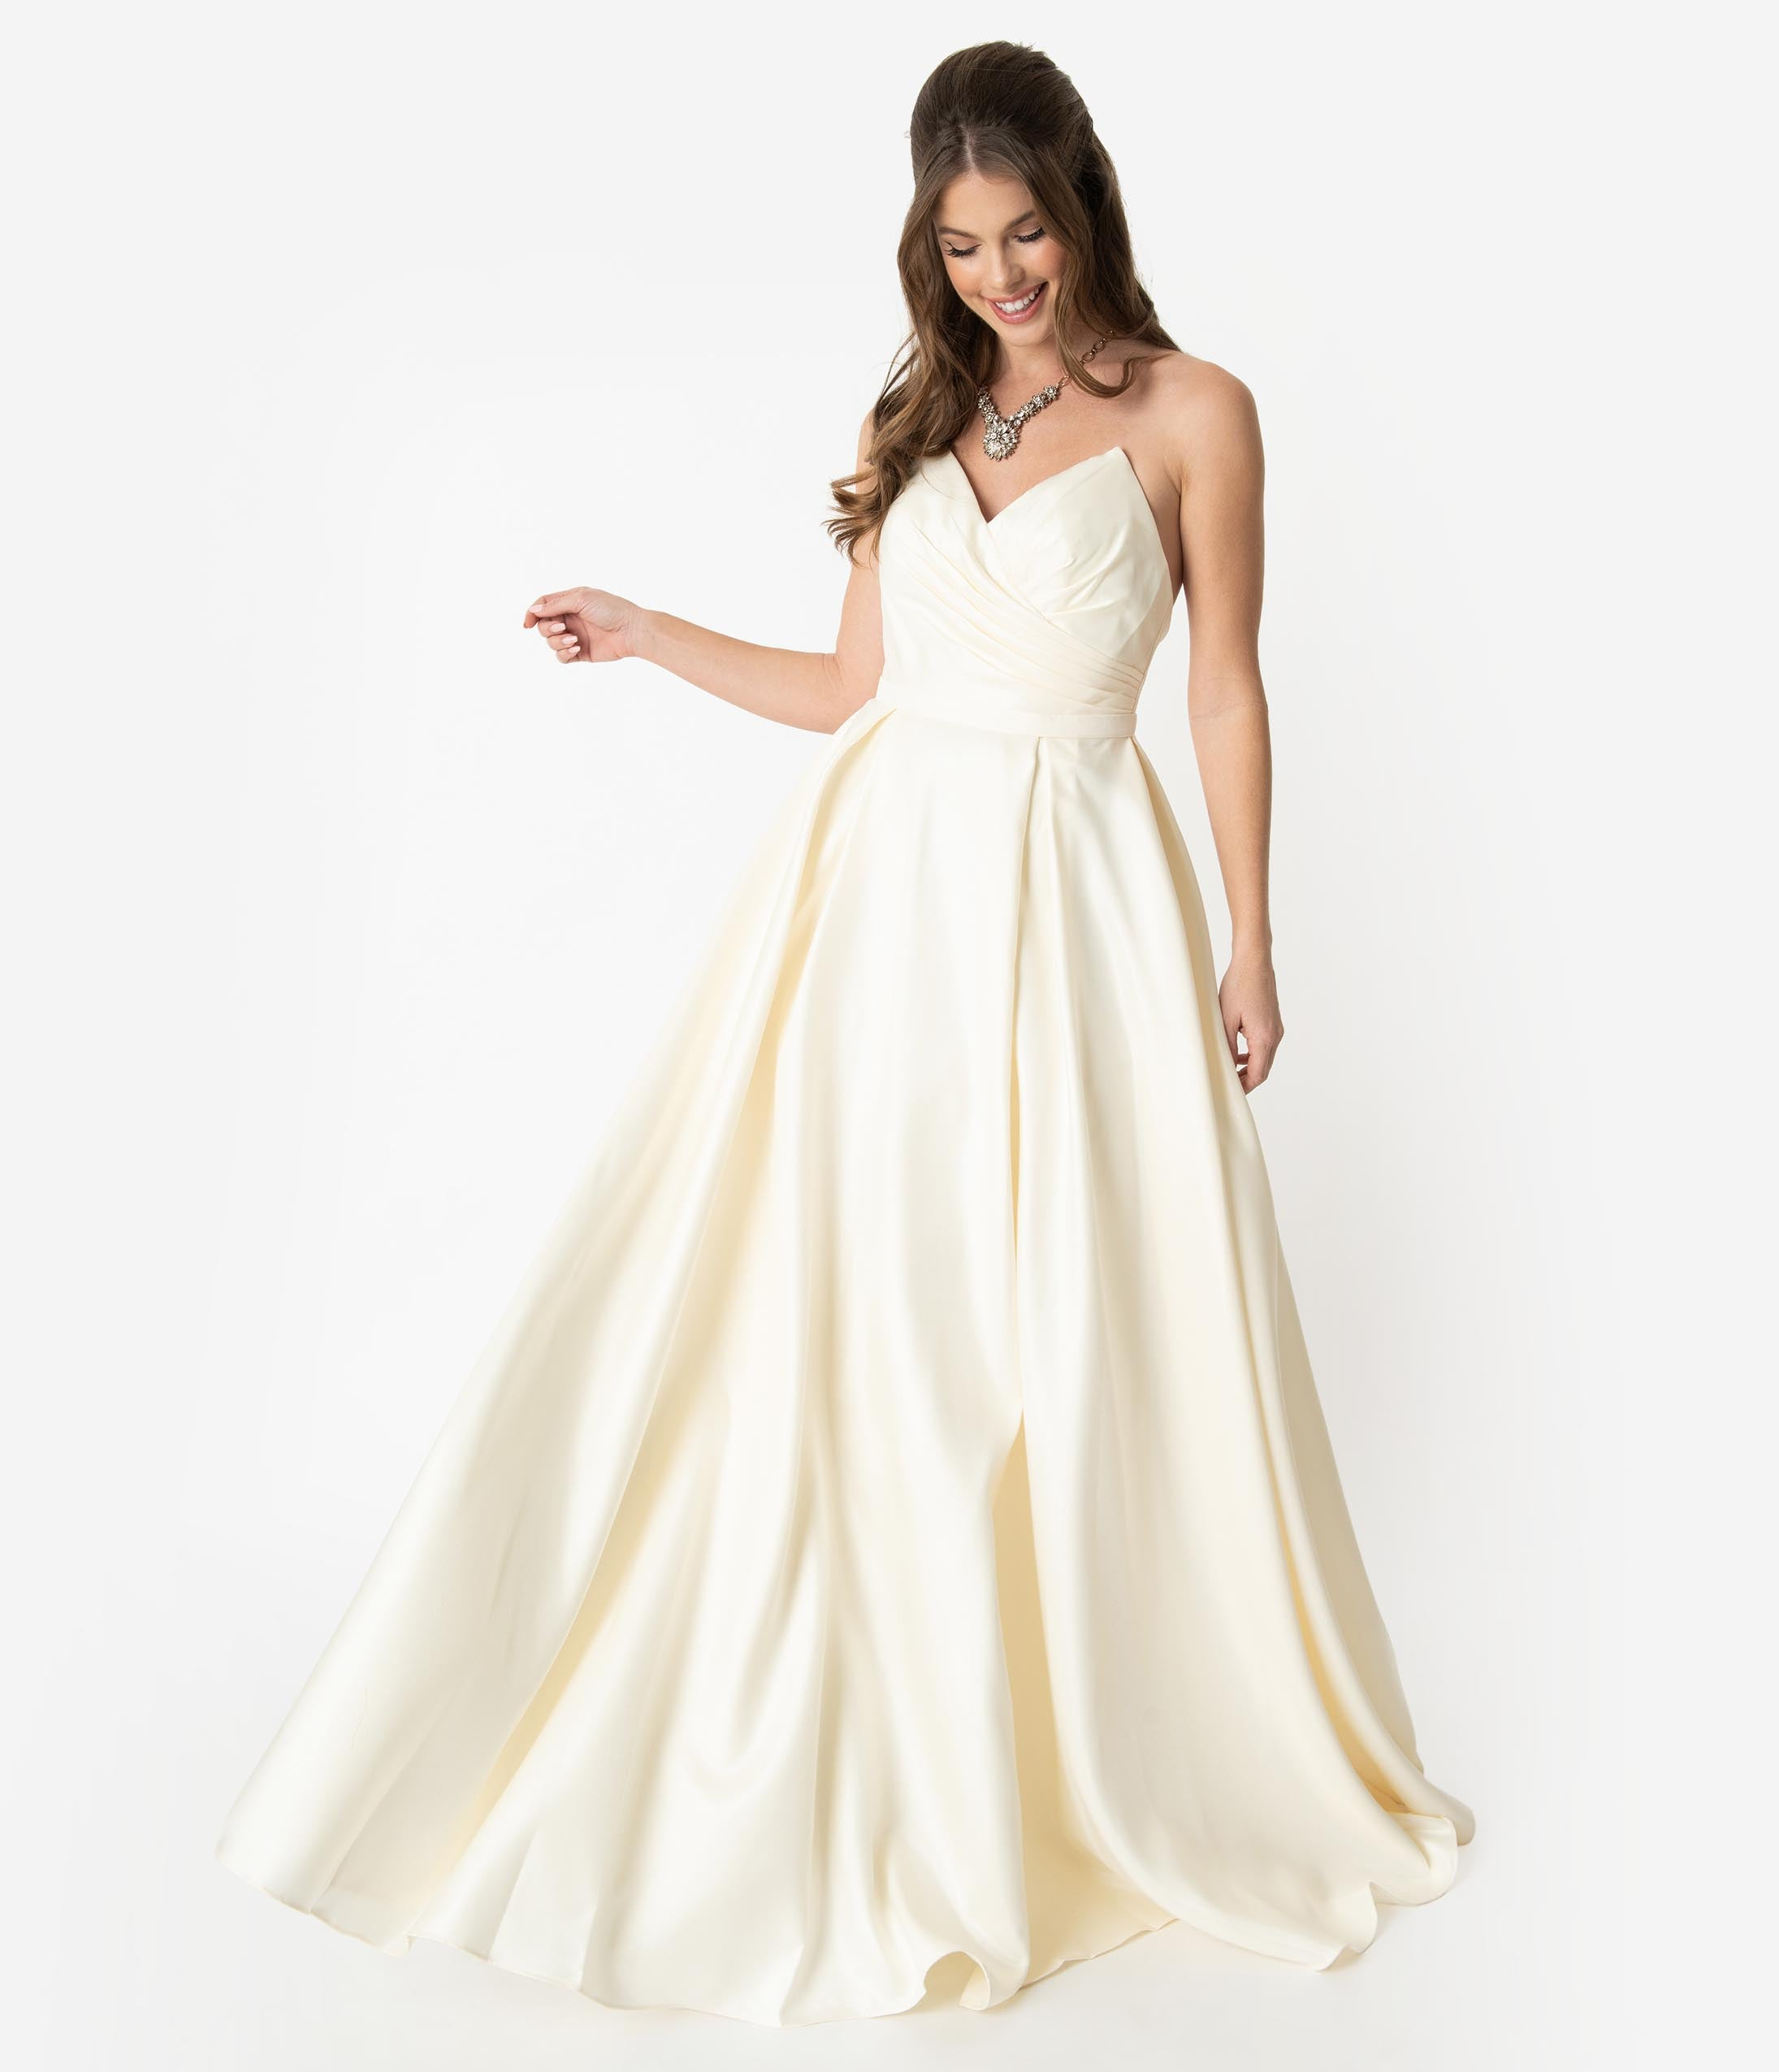 1950s History of Prom, Party, and Formal Dresses Cream Satin Pleated Pointed Sweetheart Strapless Wedding Gown $174.00 AT vintagedancer.com